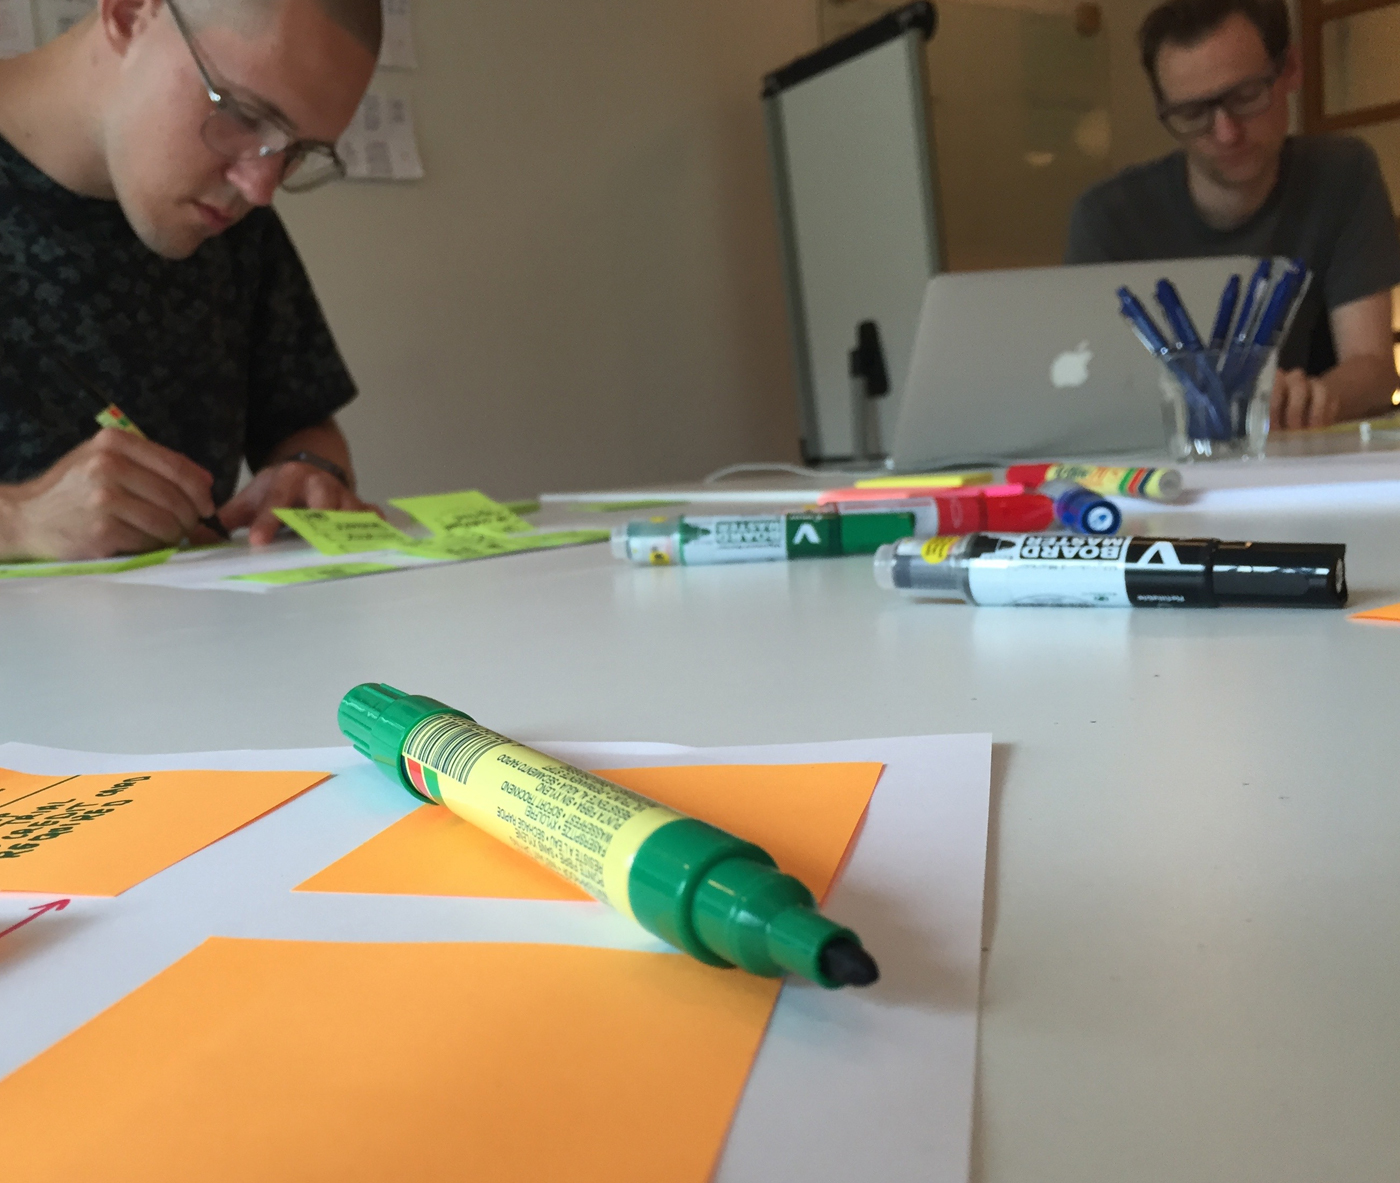 Product Design Sprint activities